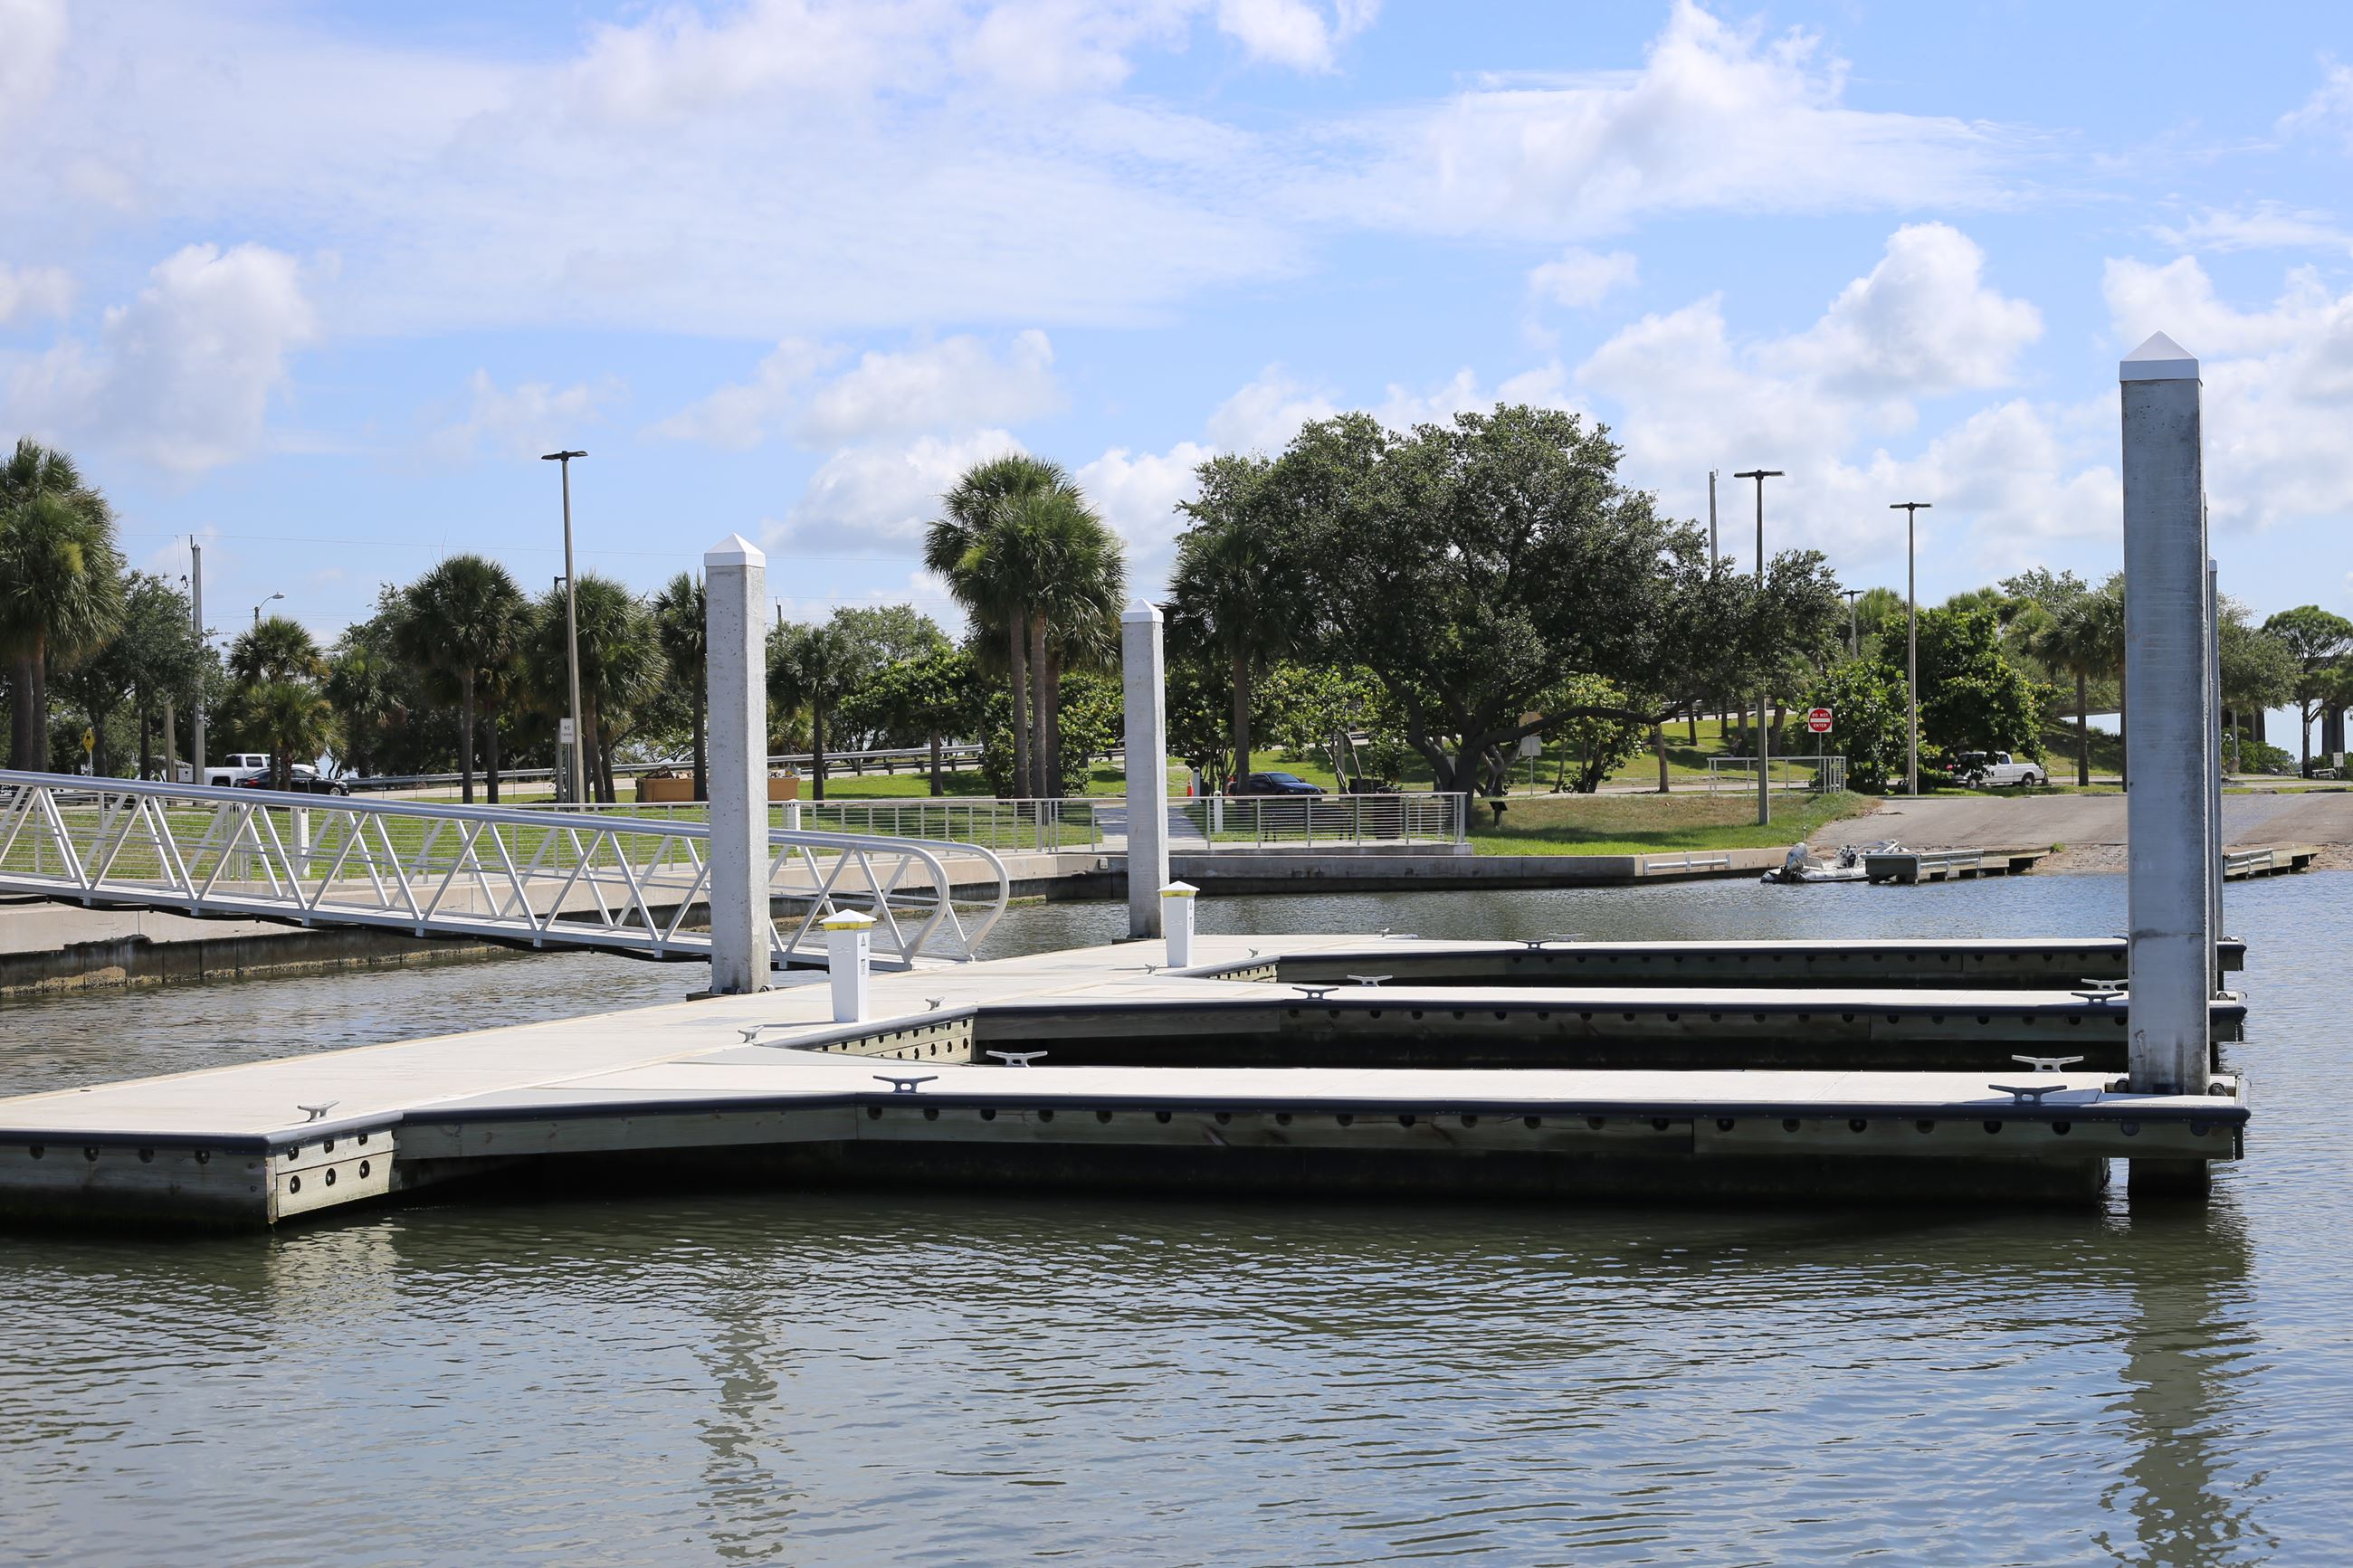 City of Cocoa t dock